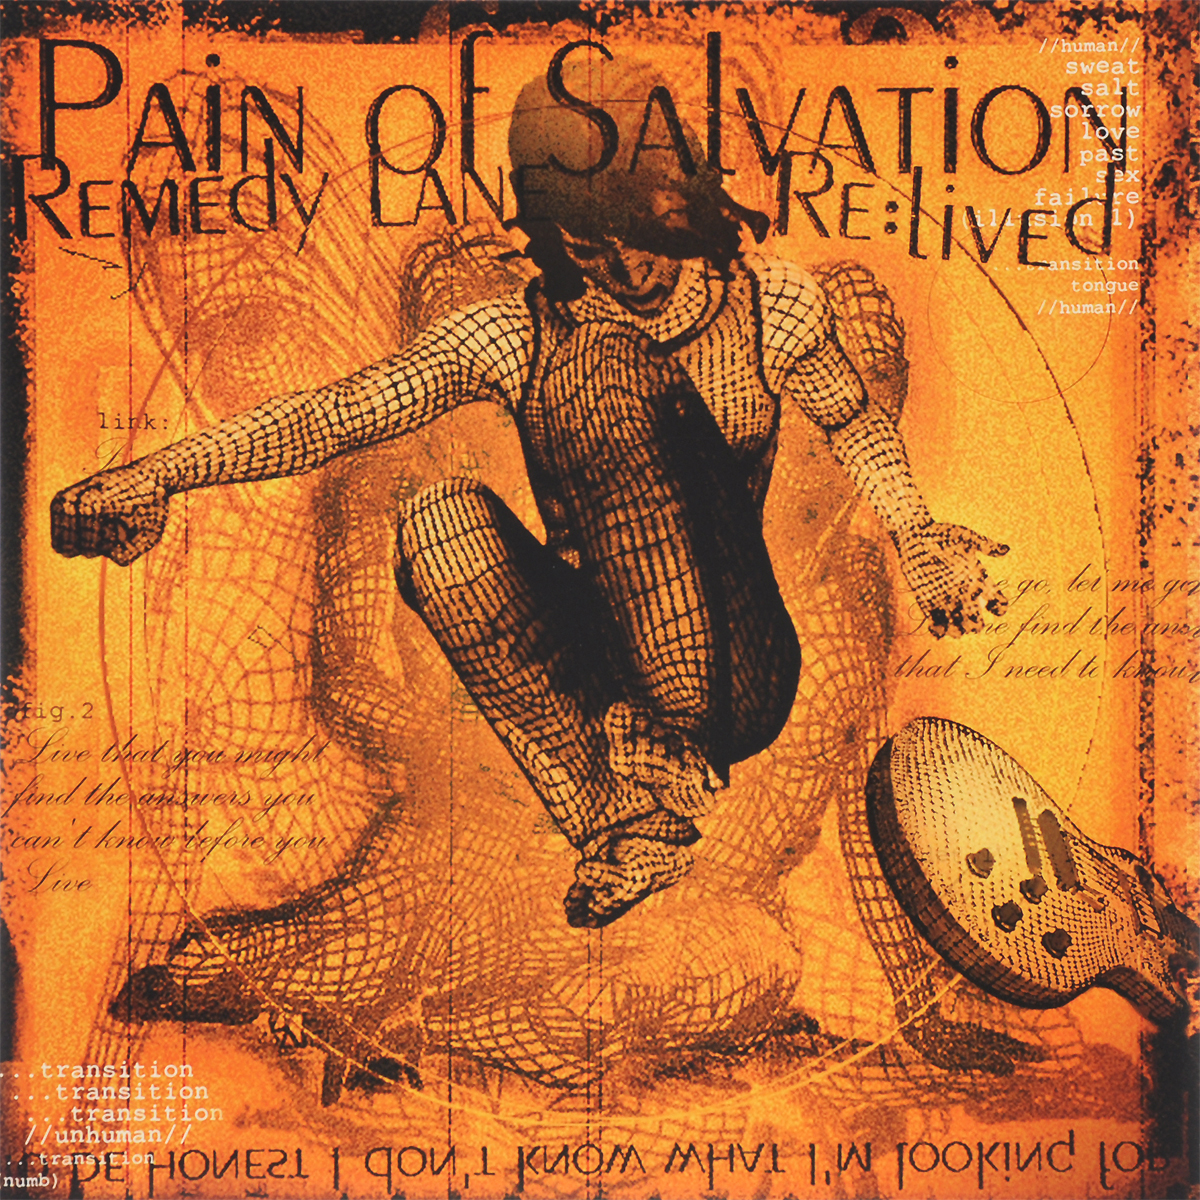 Pain Of Salvation Pain Of Salvation. Remedy Lane Re:Lived (2 LP + CD) ending themes on the two deaths of pain of salvation limited edition 2 dvd 2 cd